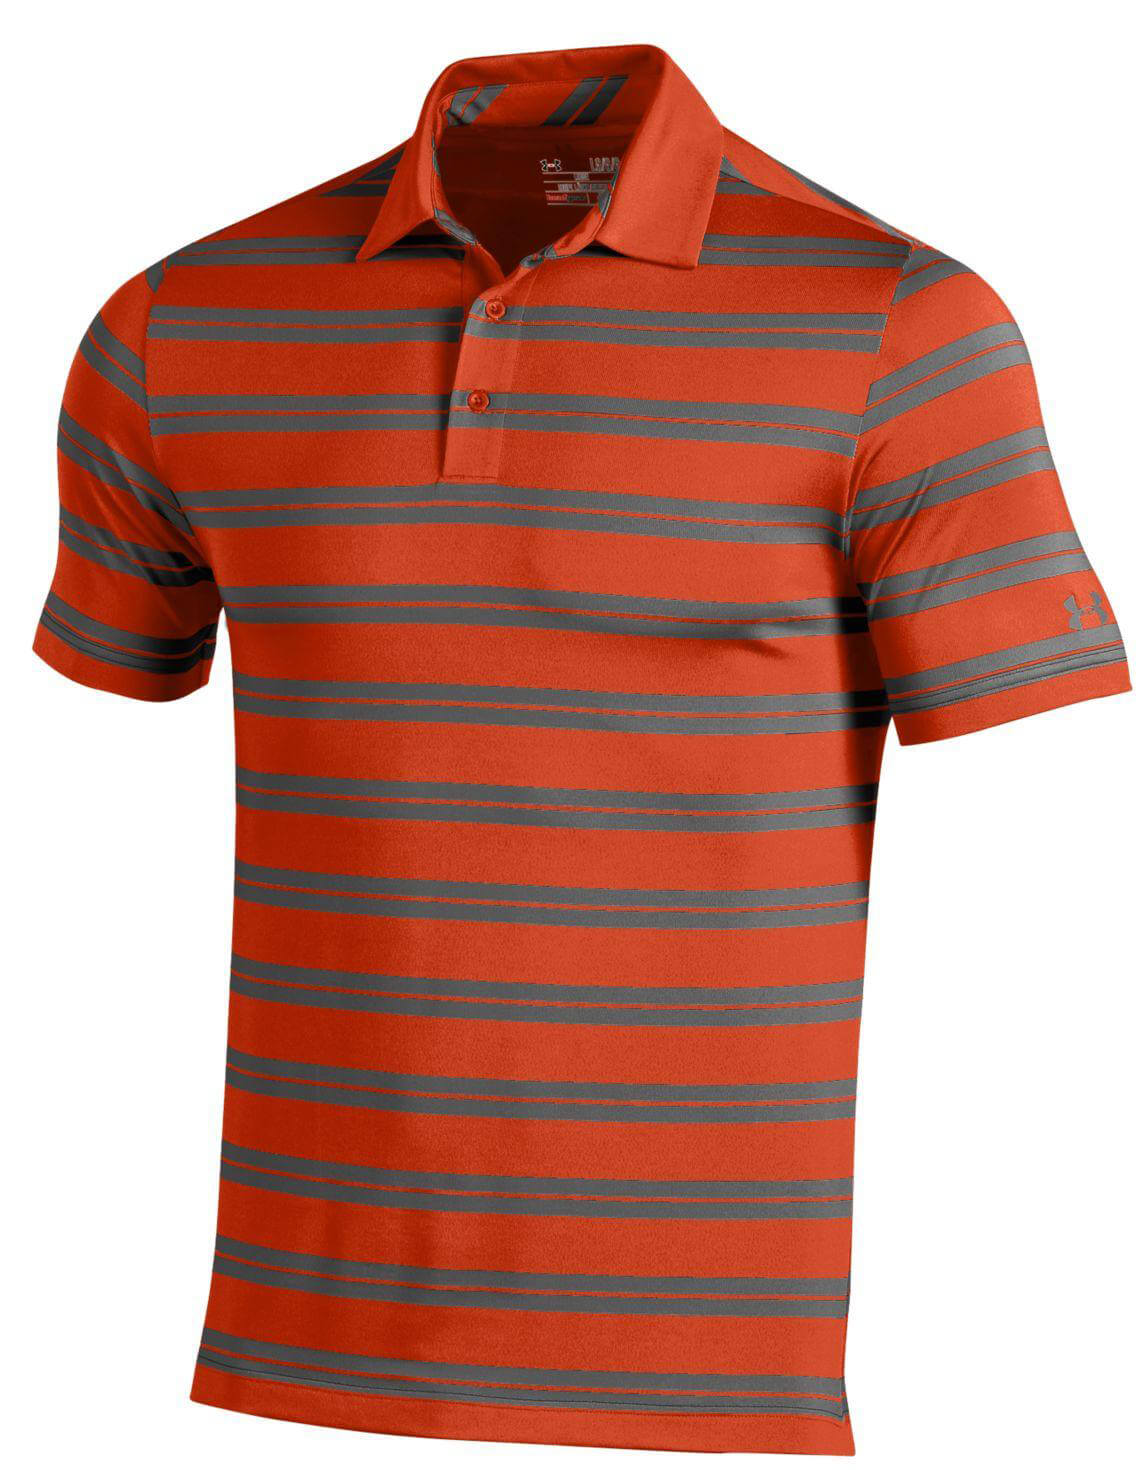 Under armour performance stripe polo golf shirt men 39 s new for Under armor polo shirts